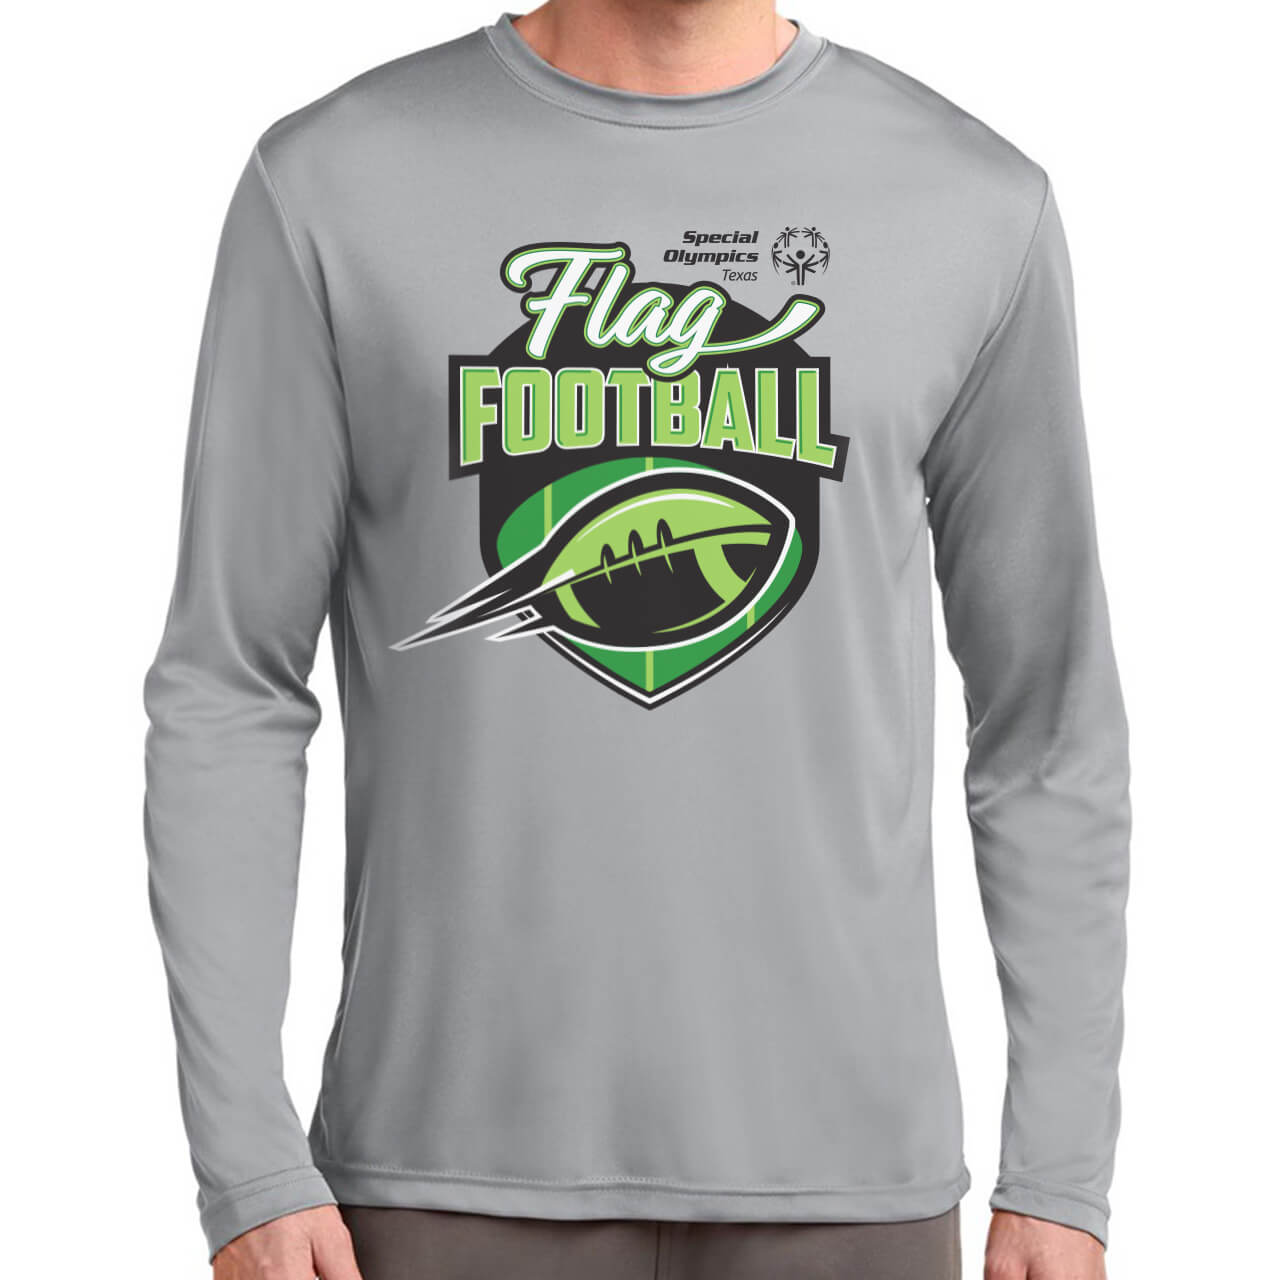 Special Olympics Texas Flag Football Logo / Shirt